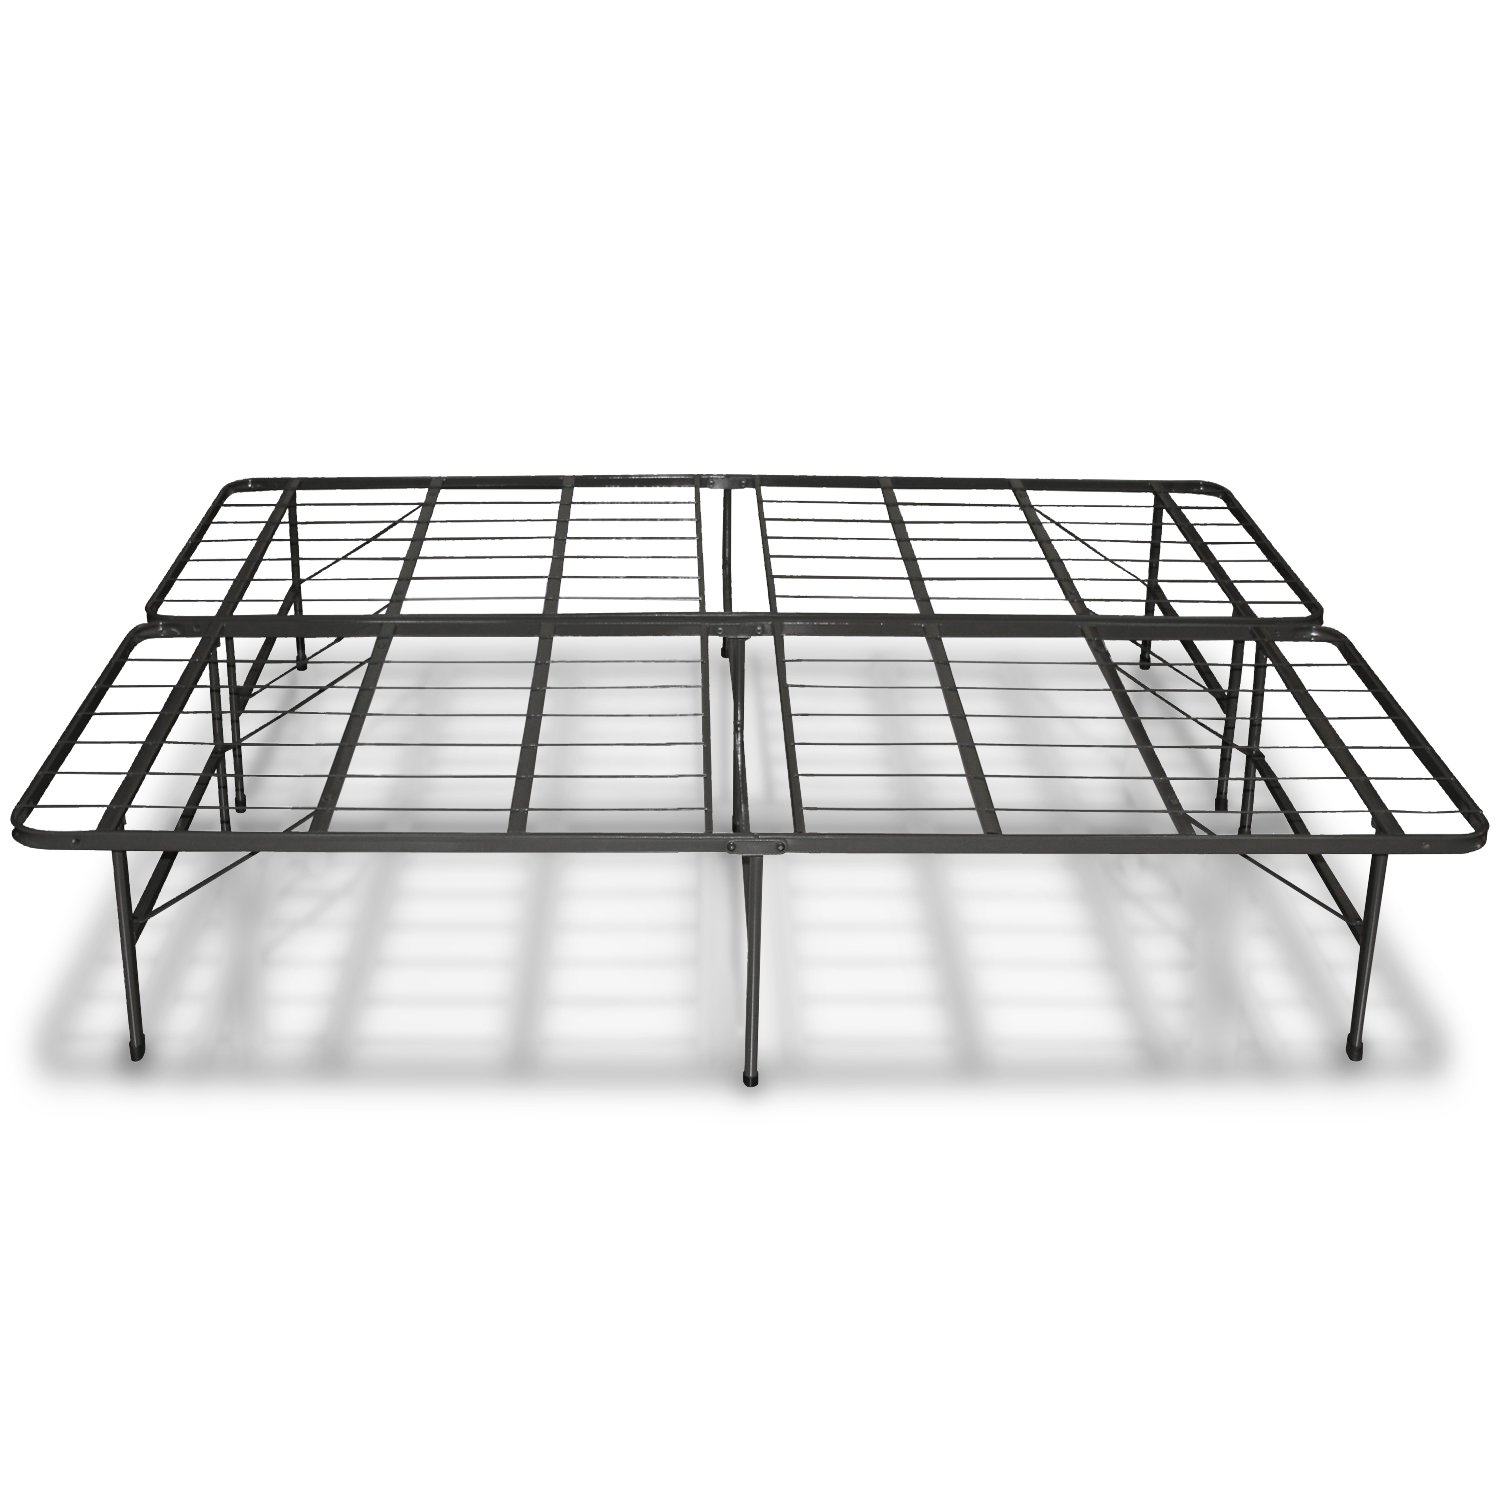 best price mattress new innovated box spring metal bed frame queen new free ebay. Black Bedroom Furniture Sets. Home Design Ideas